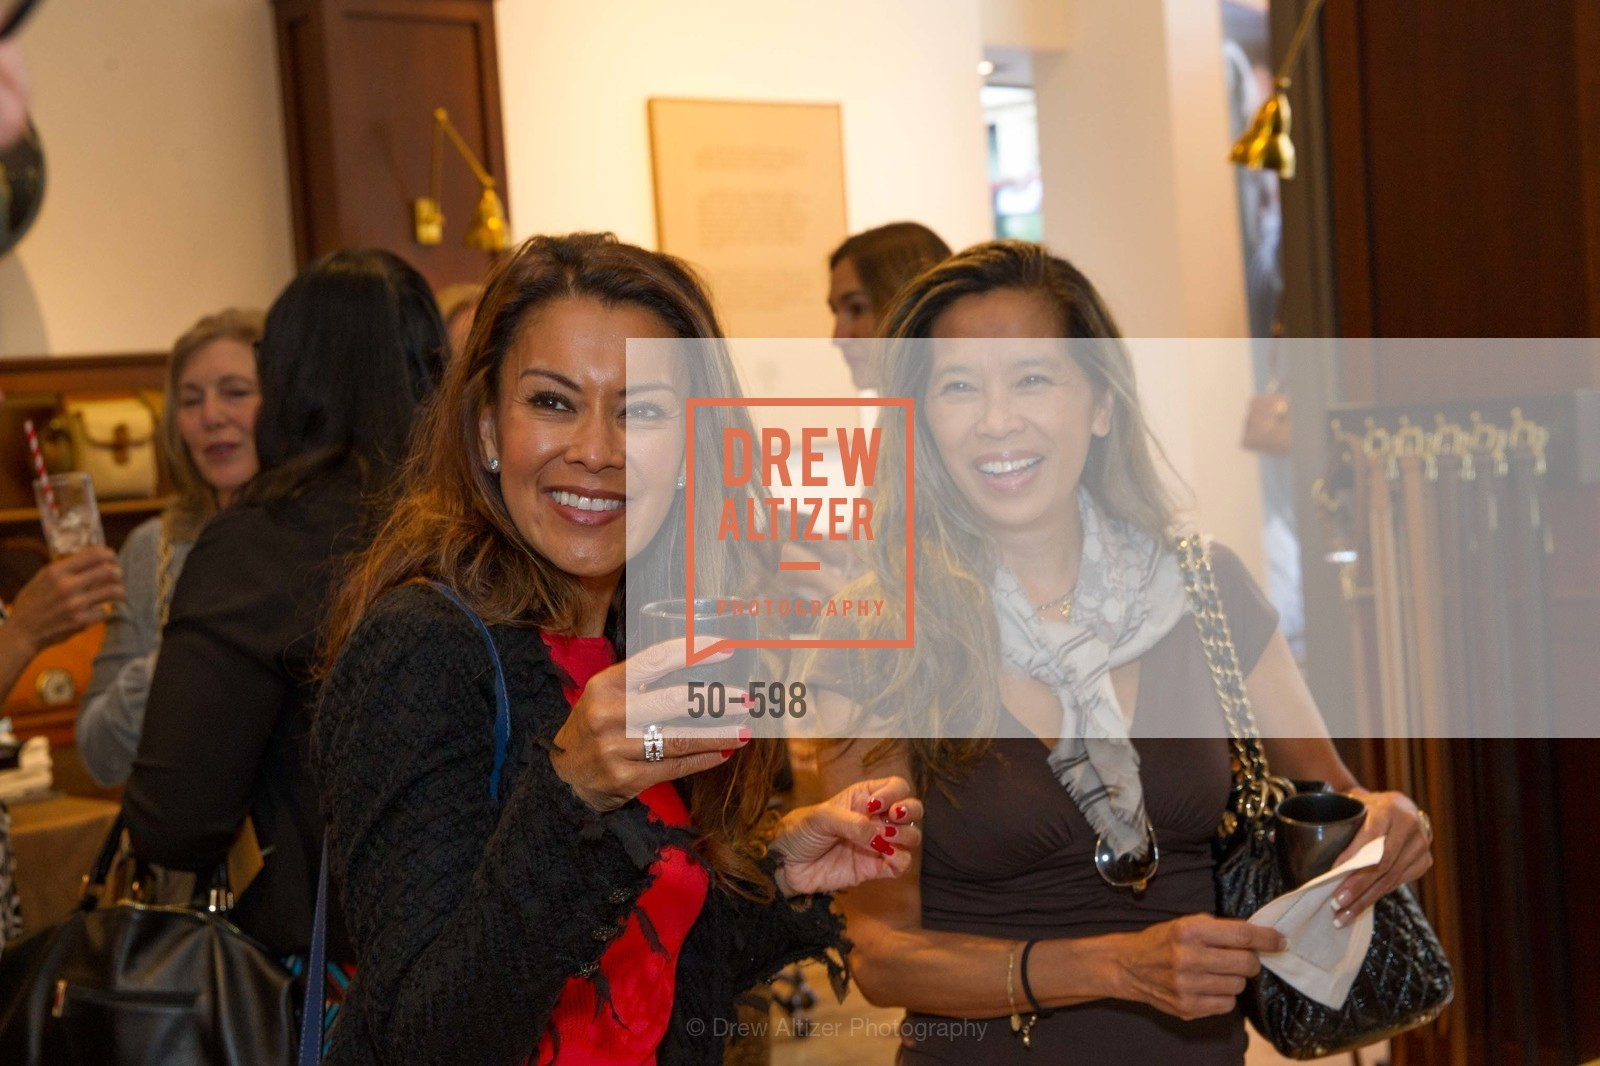 Veronica Villanueva, Jenny Wong, GHURKA FALL FASHION Press Preview Honoring the ZOO BOARD, US, October 8th, 2014,Drew Altizer, Drew Altizer Photography, full-service agency, private events, San Francisco photographer, photographer california